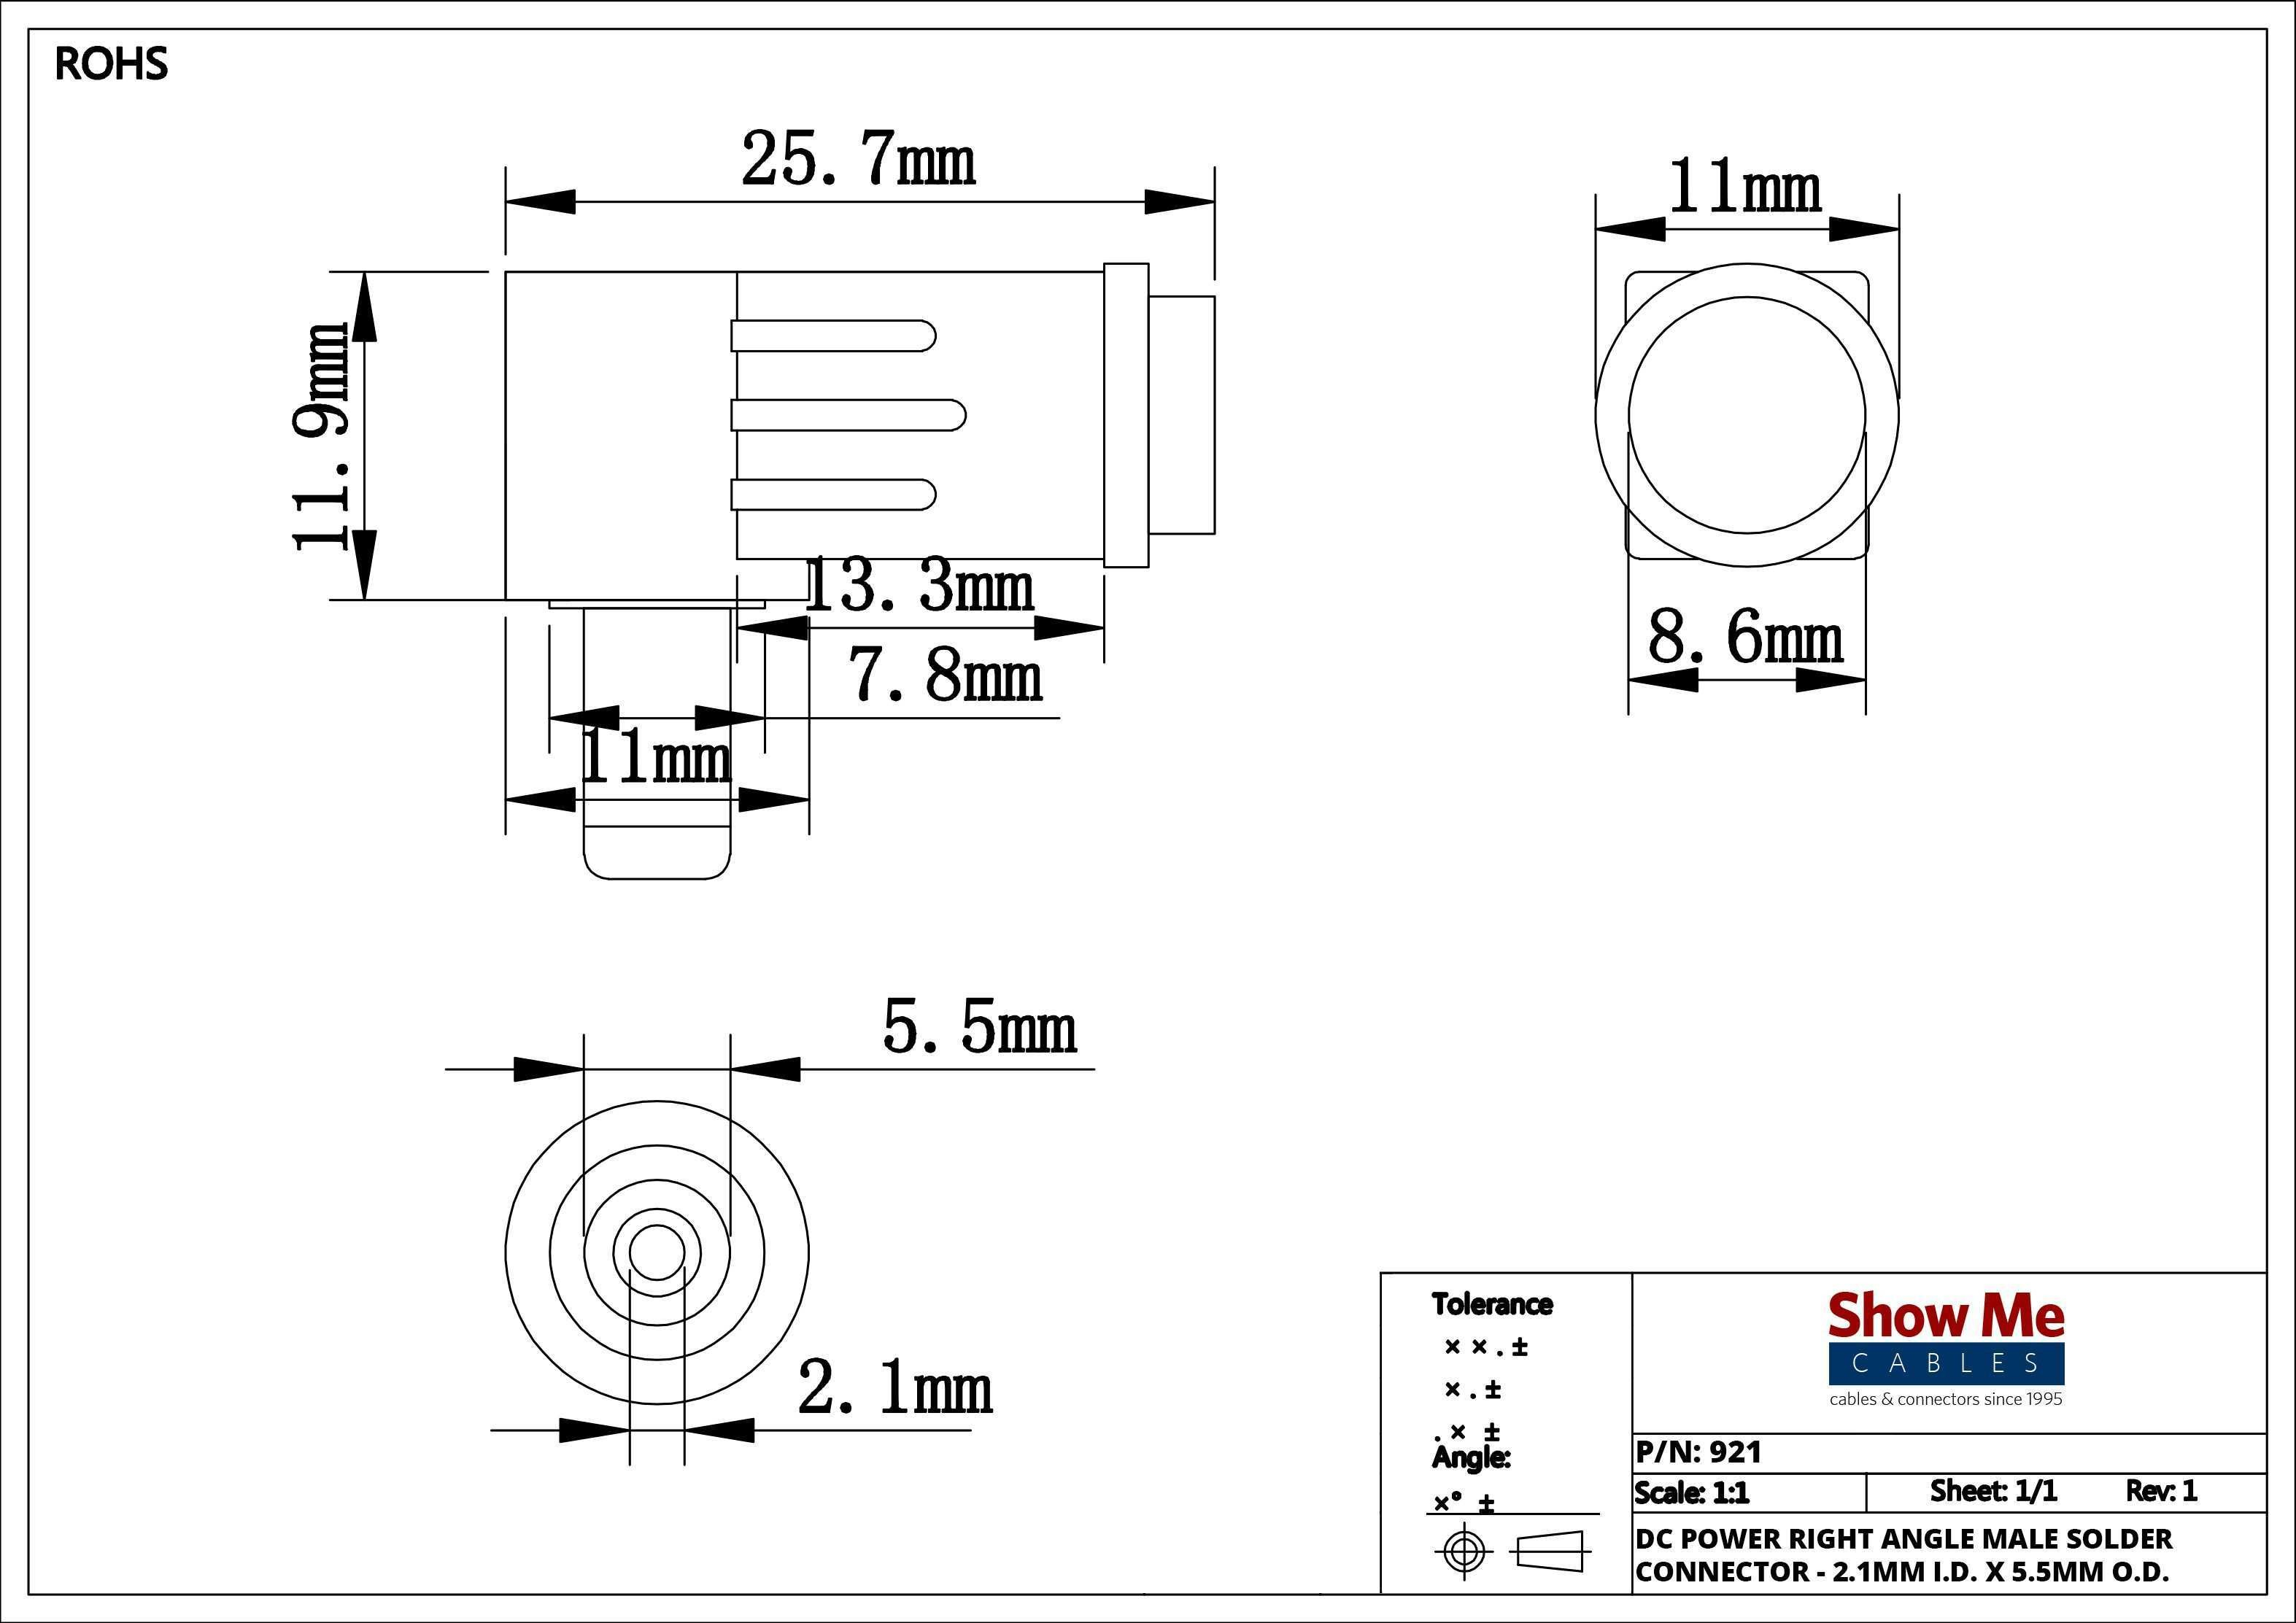 Wiring Diagram for 7 Wire Trailer Plug 5 Wire Trailer Plug Diagram Unique 3 5 Mm Stereo Jack Wiring Diagram Of Wiring Diagram for 7 Wire Trailer Plug